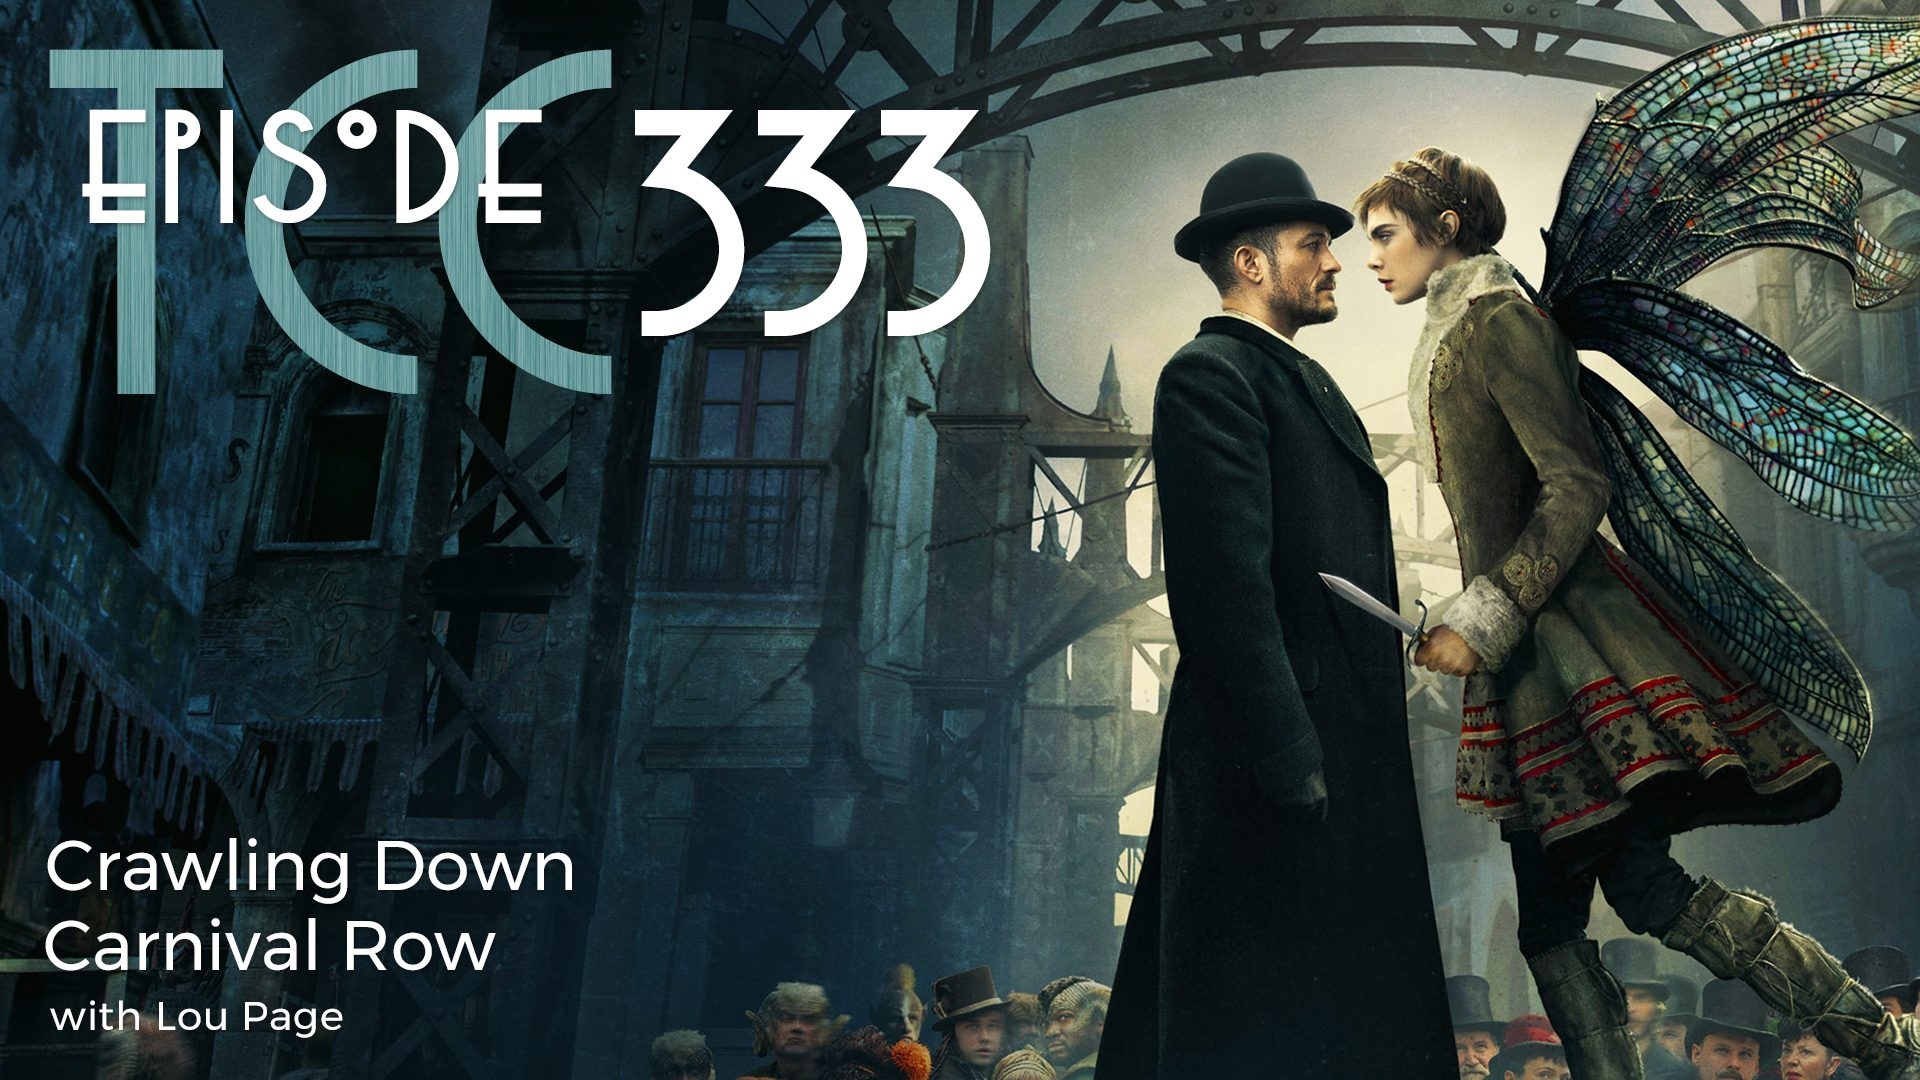 The Citadel Cafe 333: Crawling Down Carnival Row